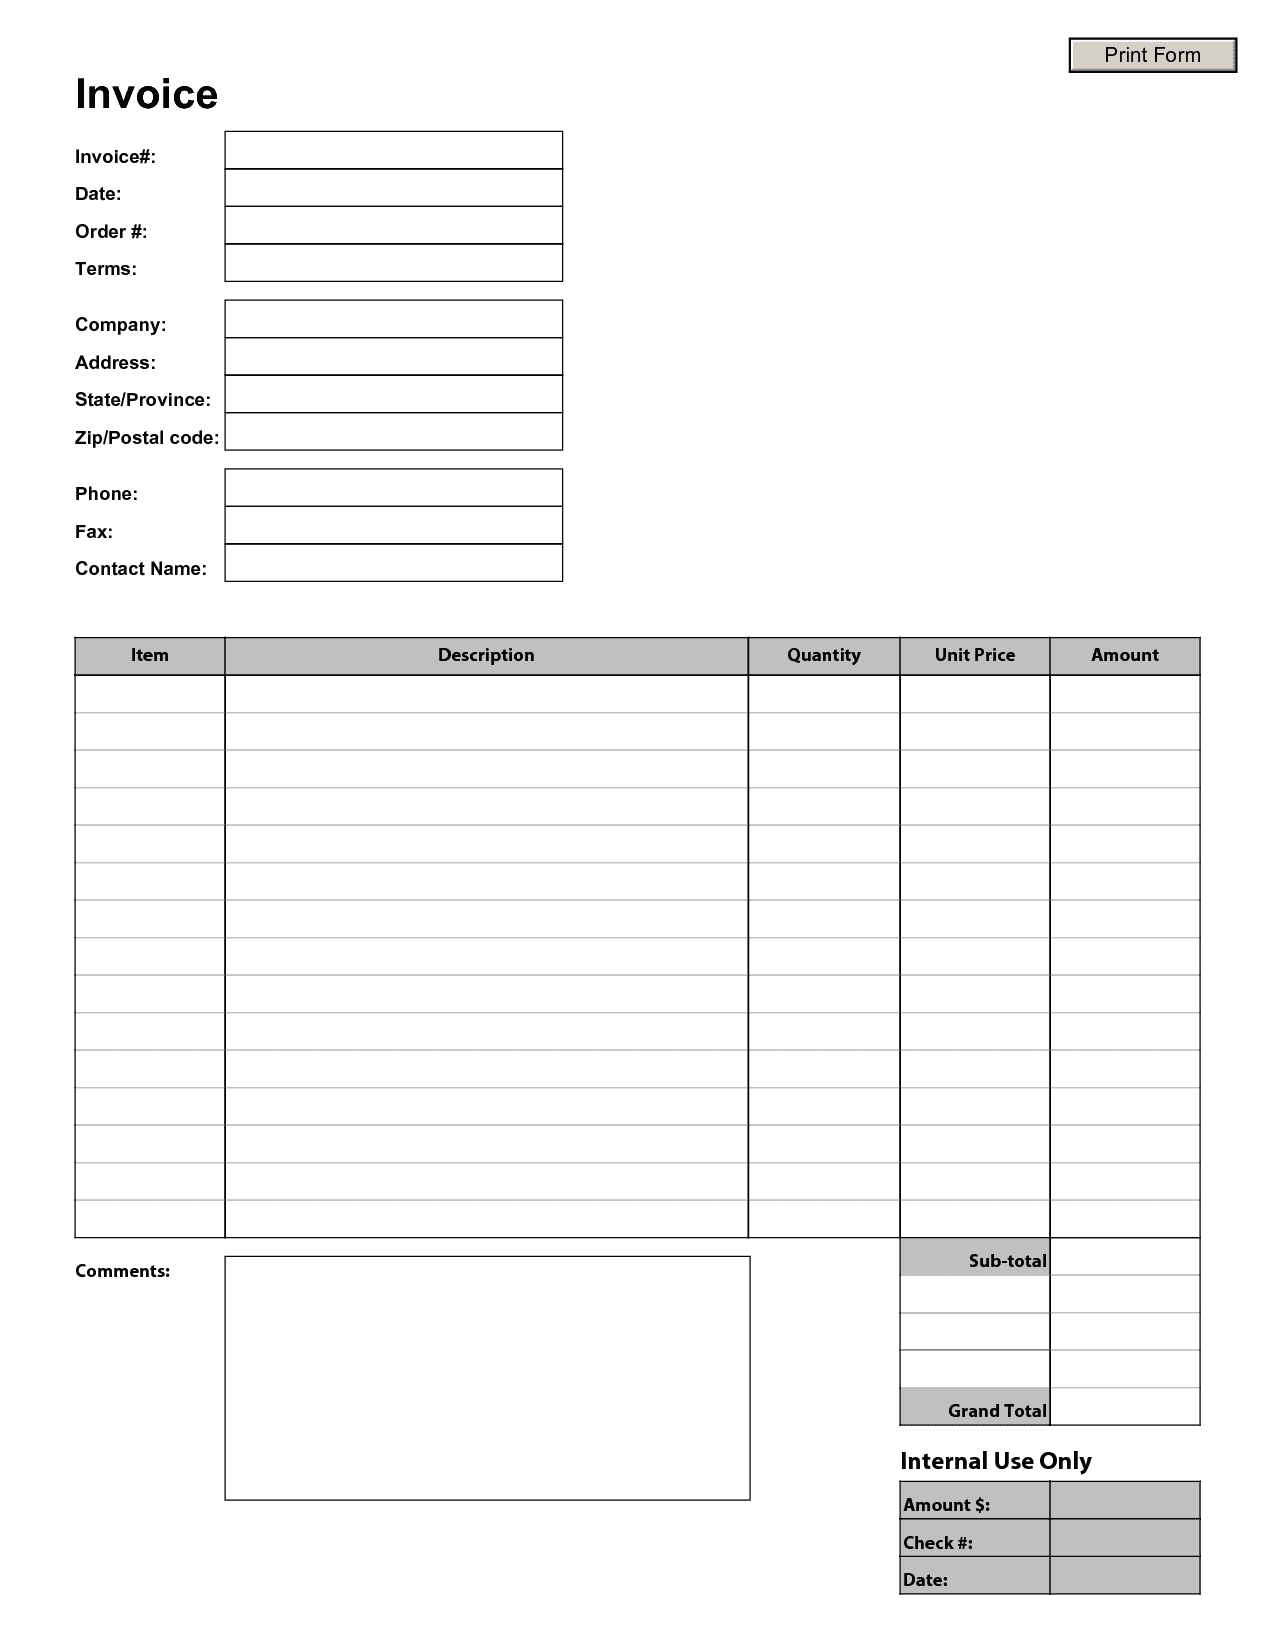 Excel Templates For Scheduling Employees And Free Invoice Templates To Fill In